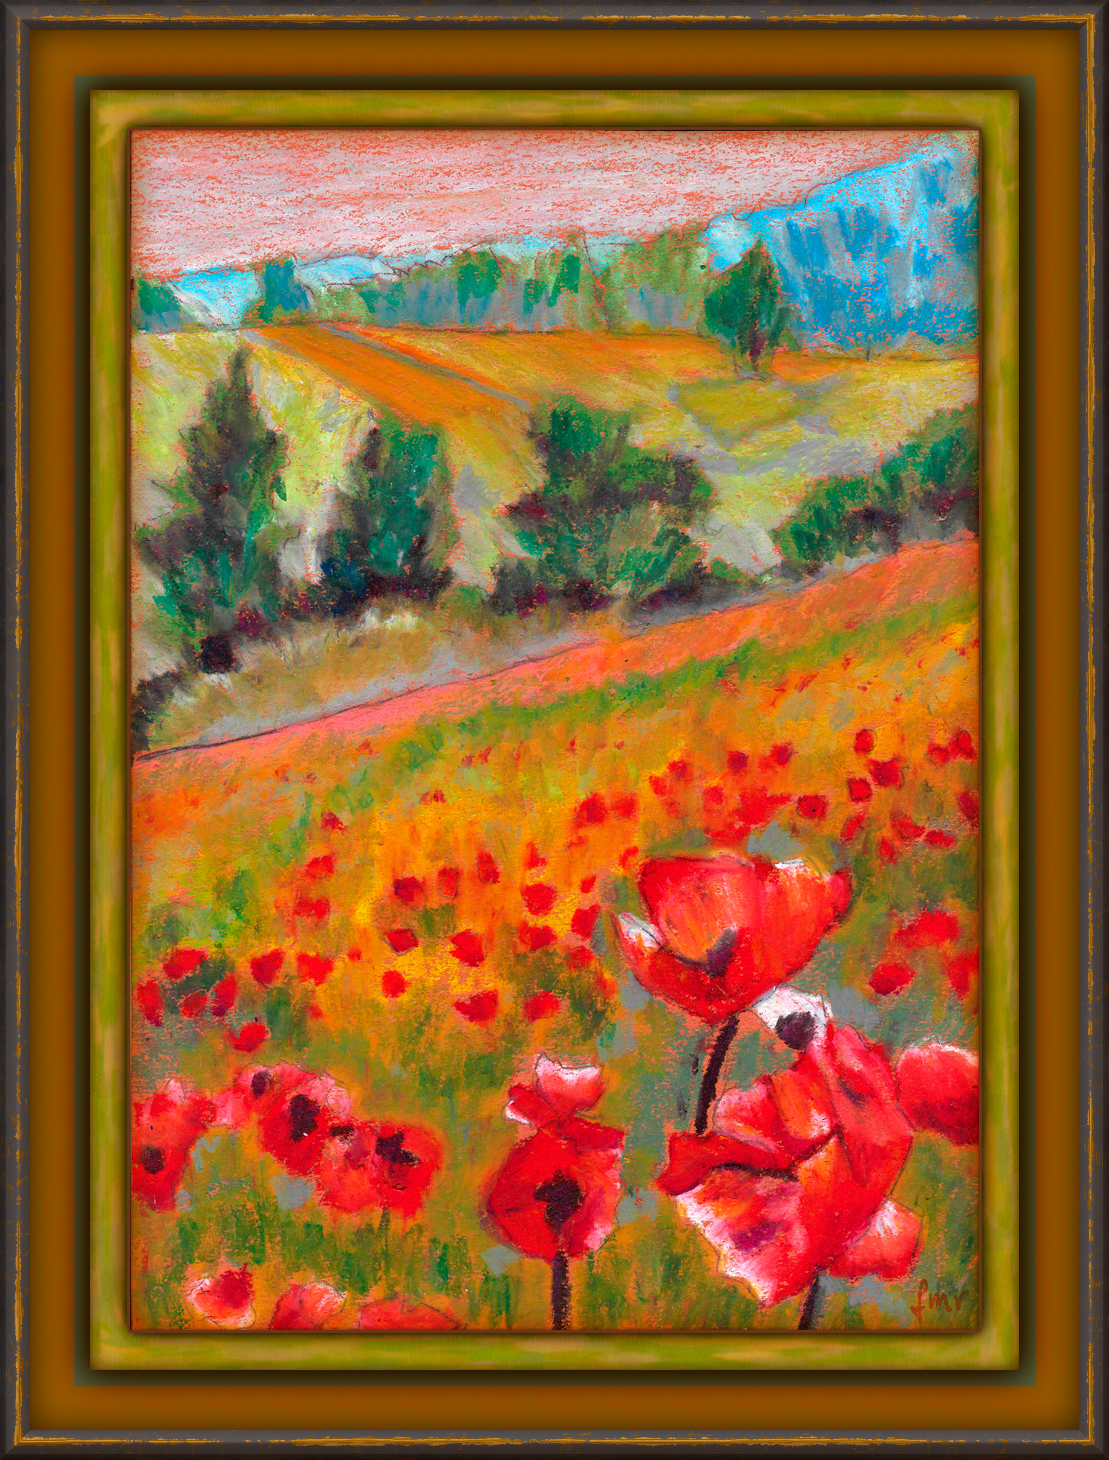 Fields of Poppies by Saltwater